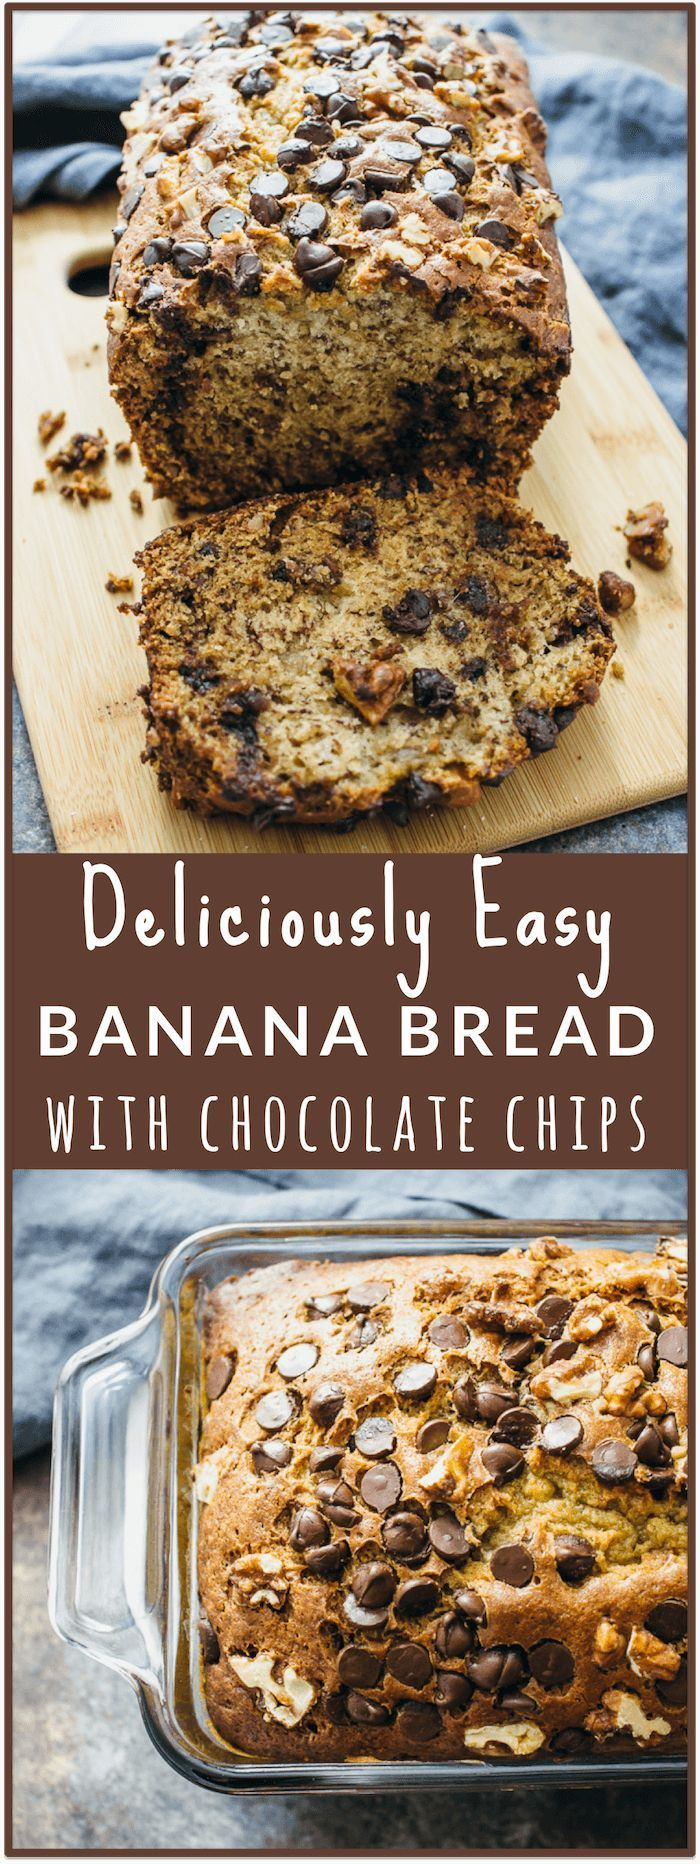 Banana bread with chocolate chips and walnuts - Heres an easy and healthy recipe…